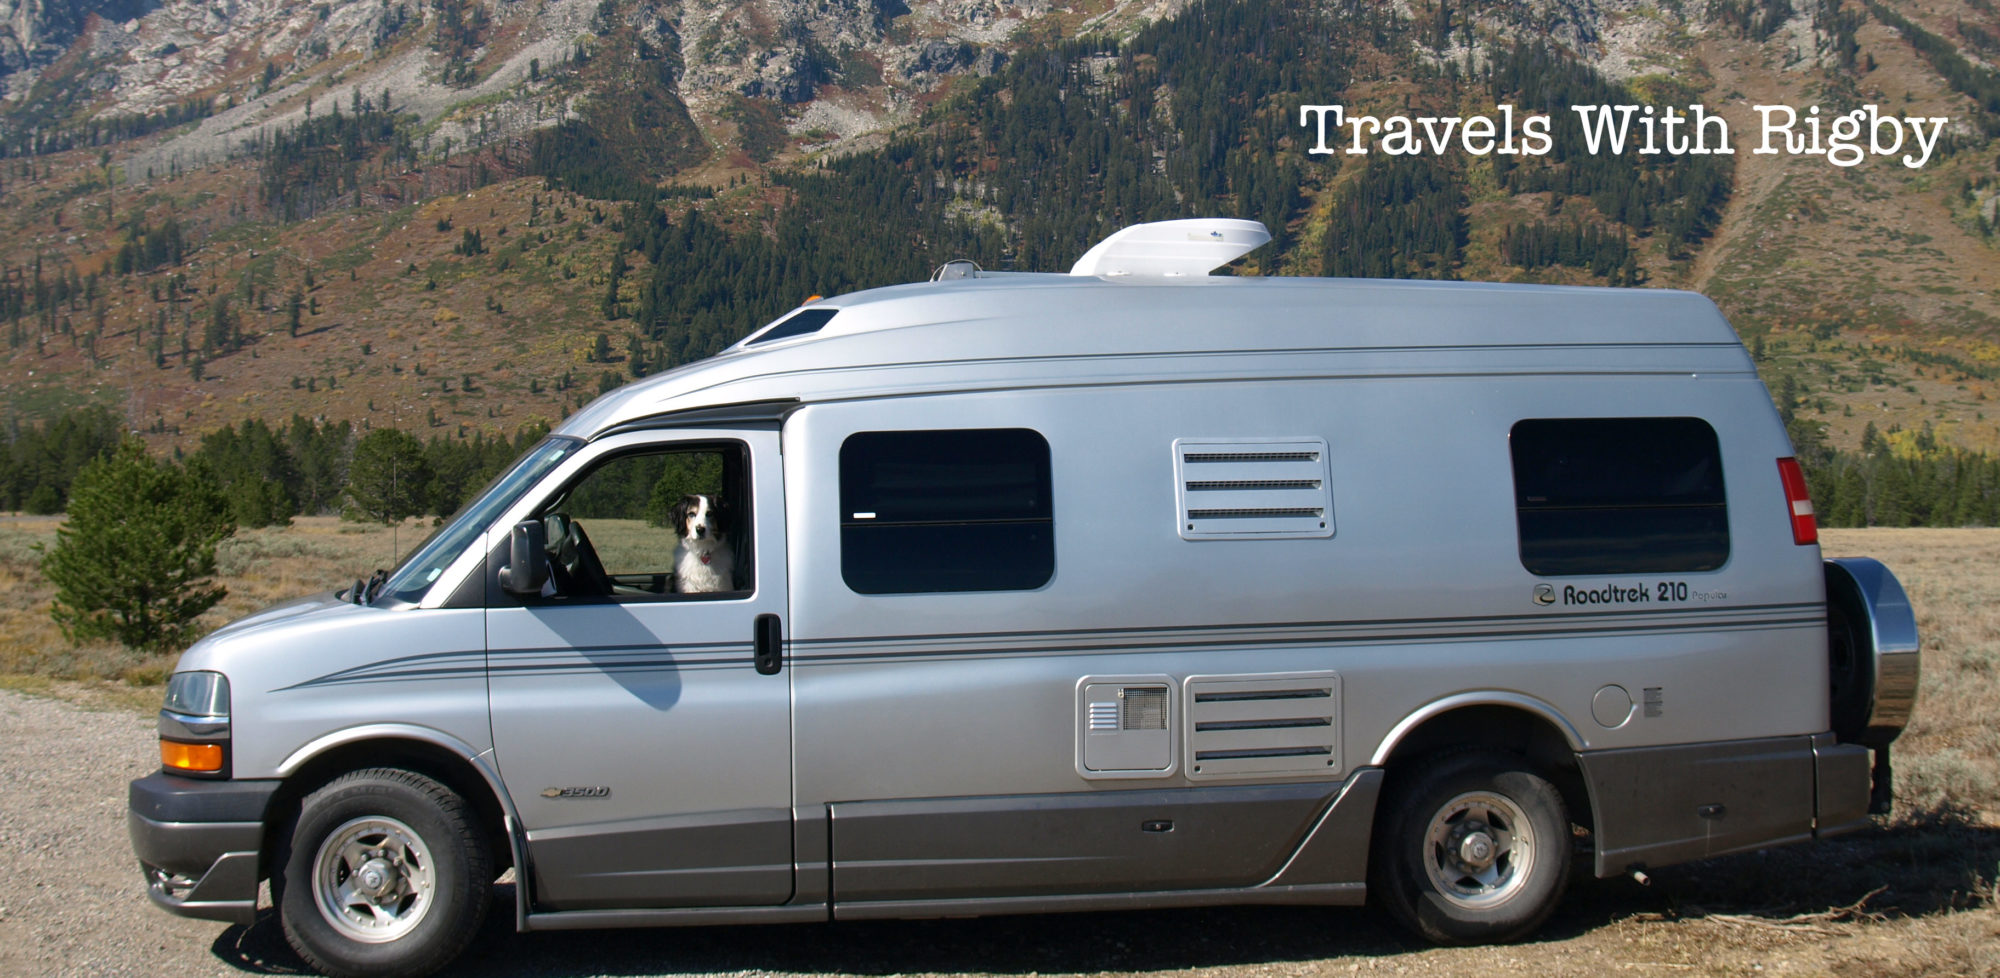 Strange How To Buy A Used Class B Rv Travelswithrigby Com Home Interior And Landscaping Ponolsignezvosmurscom